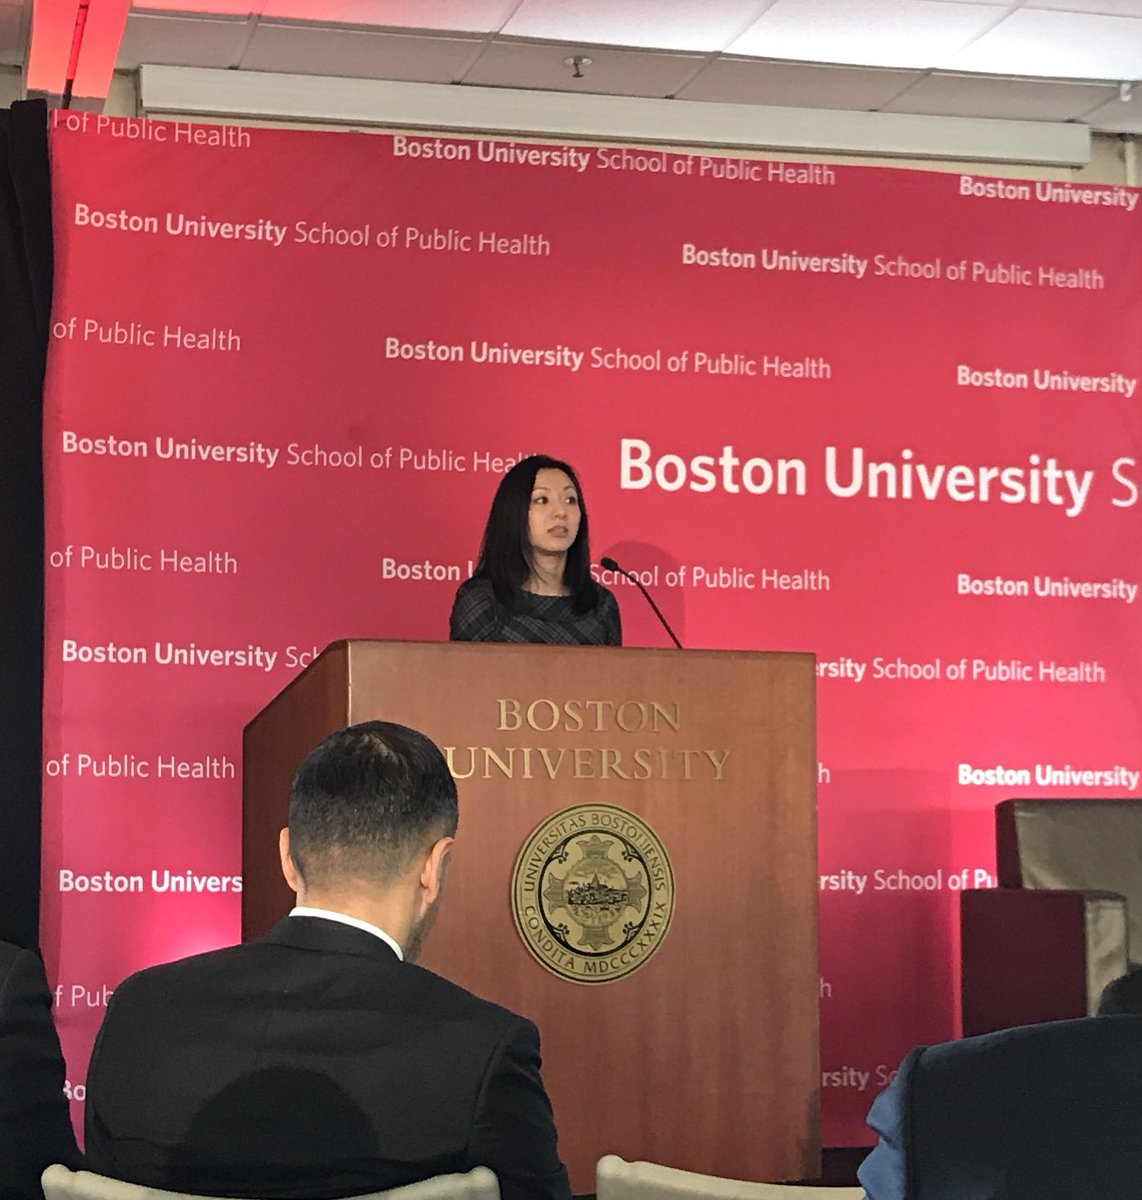 Access to health foods in cities: disparate food environments translate into health disparities - @DrMonicaWang of @BUSPH #BUSPHSymposia <br>http://pic.twitter.com/xqPTjxtePr